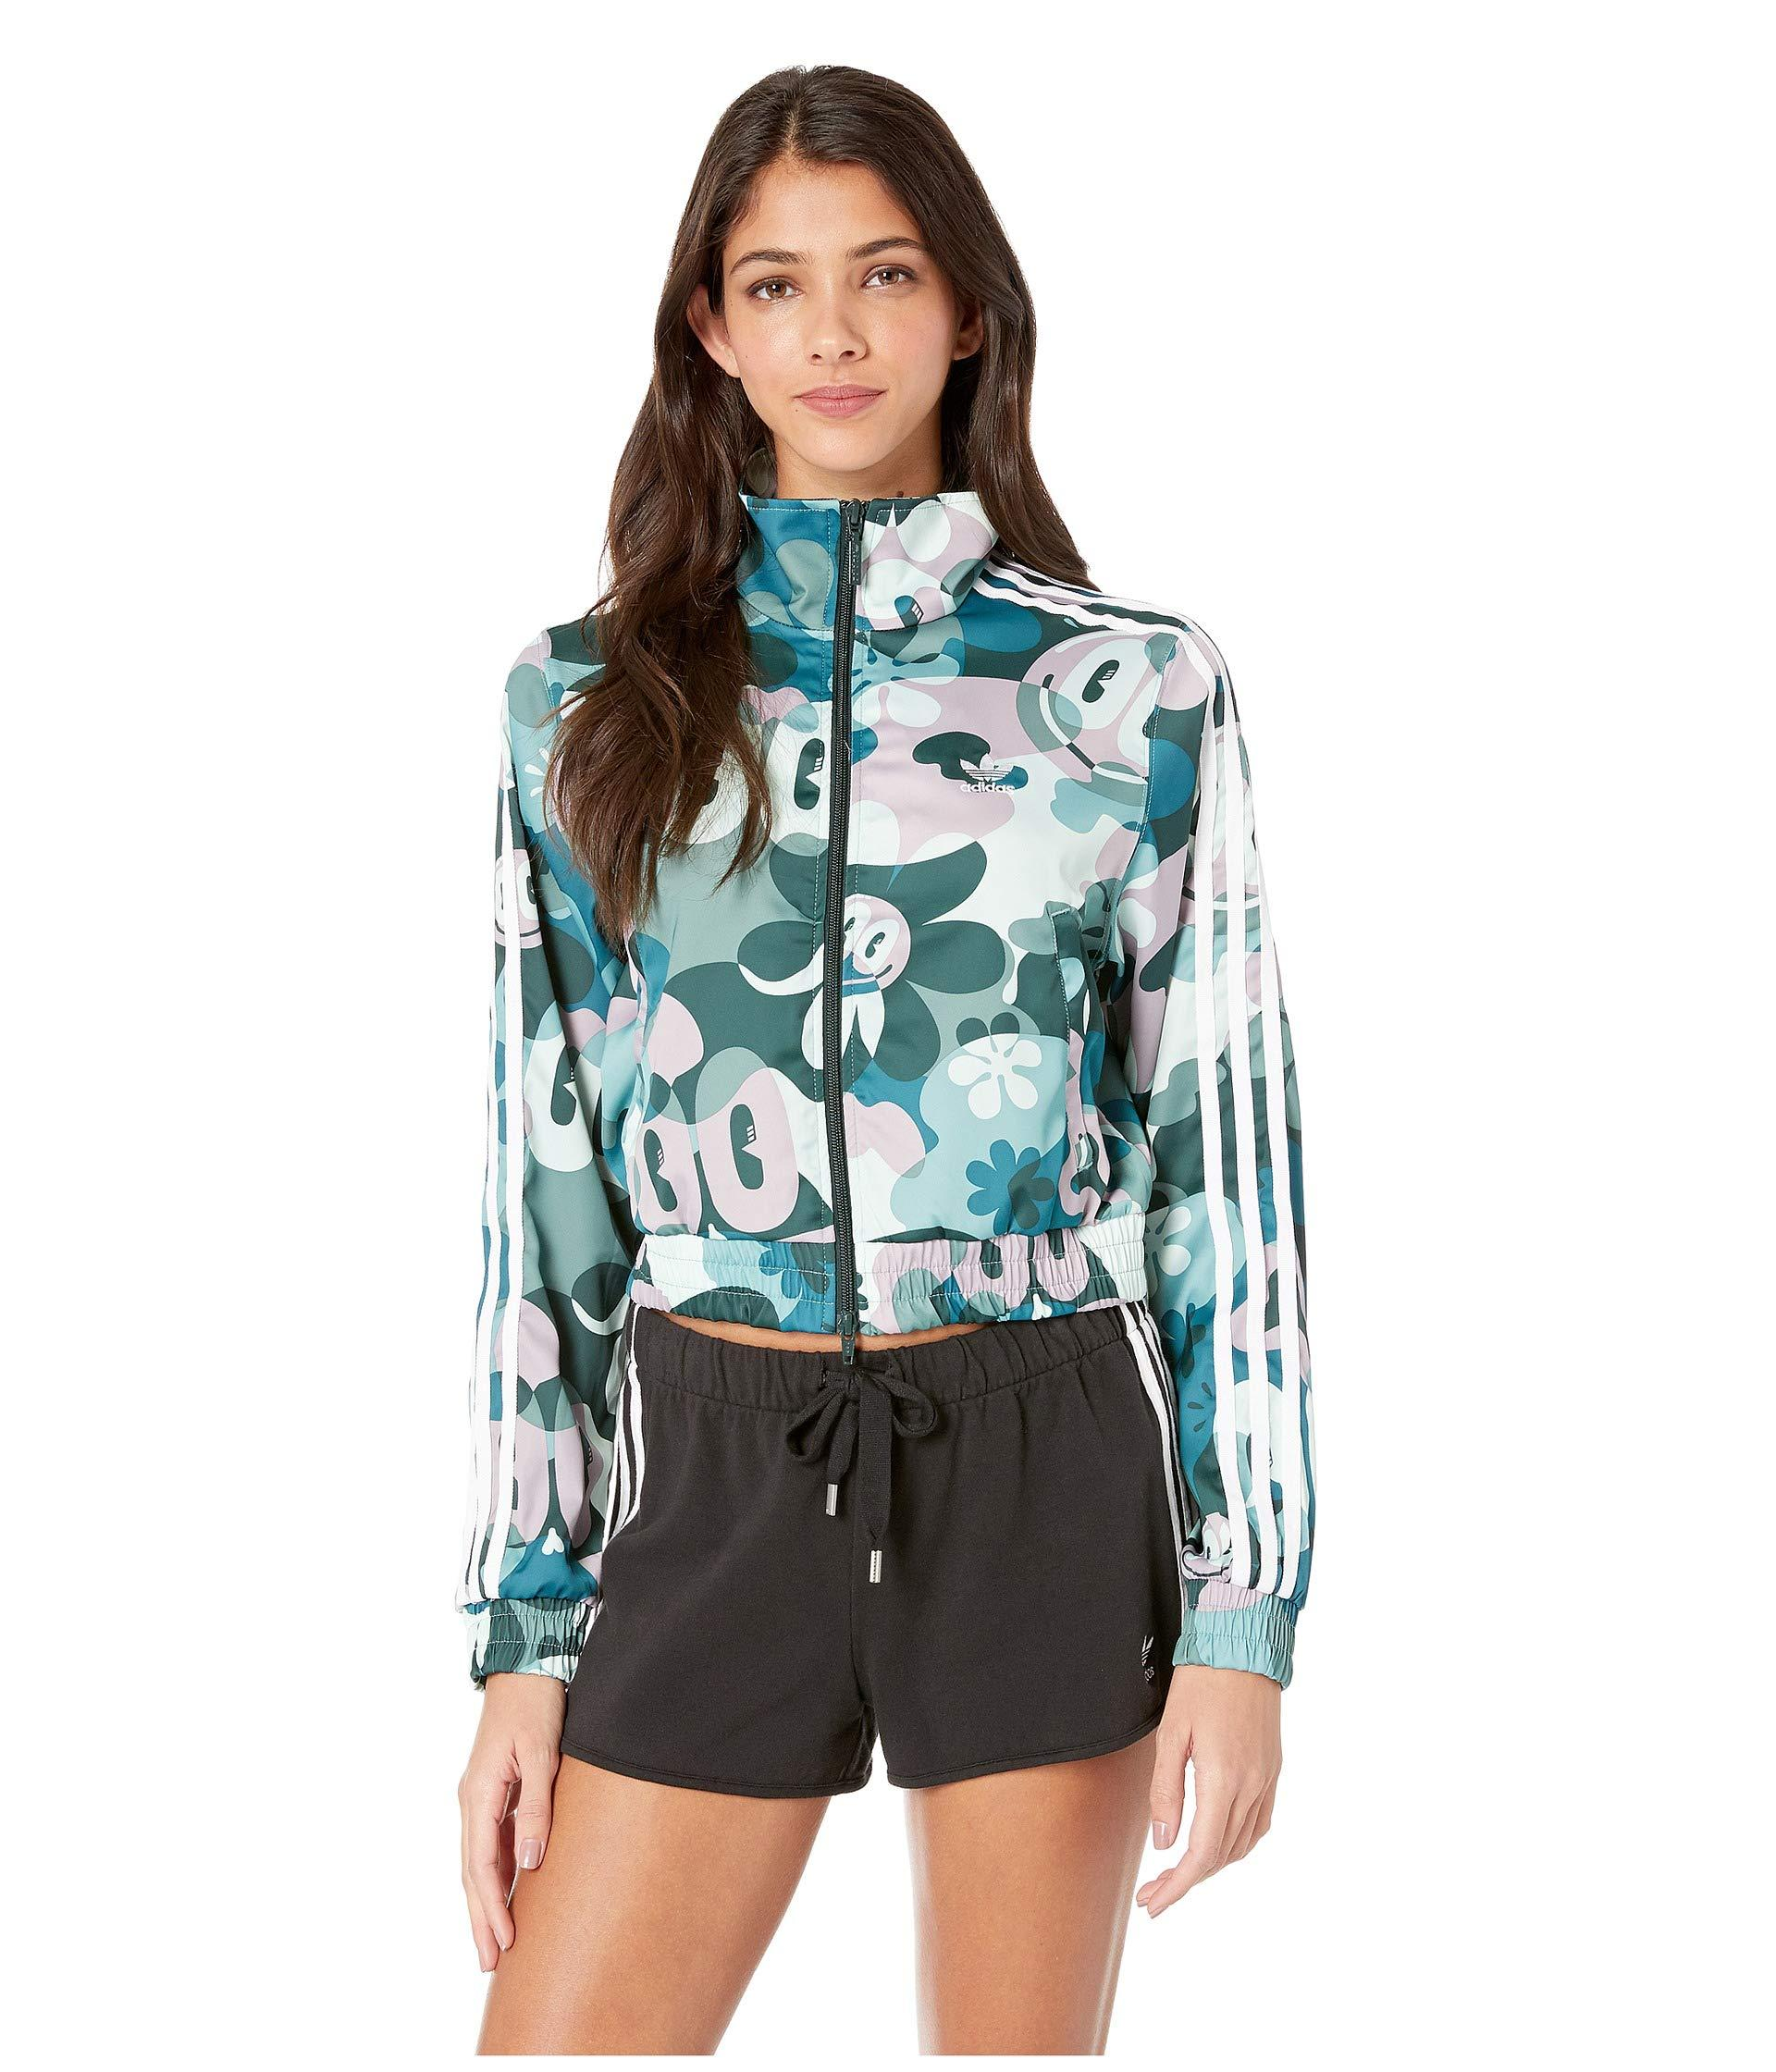 eb56f873bf44 Adidas Originals - Contemporary Bb Track Jacket (multicolor) Women s  Clothing - Lyst. View fullscreen